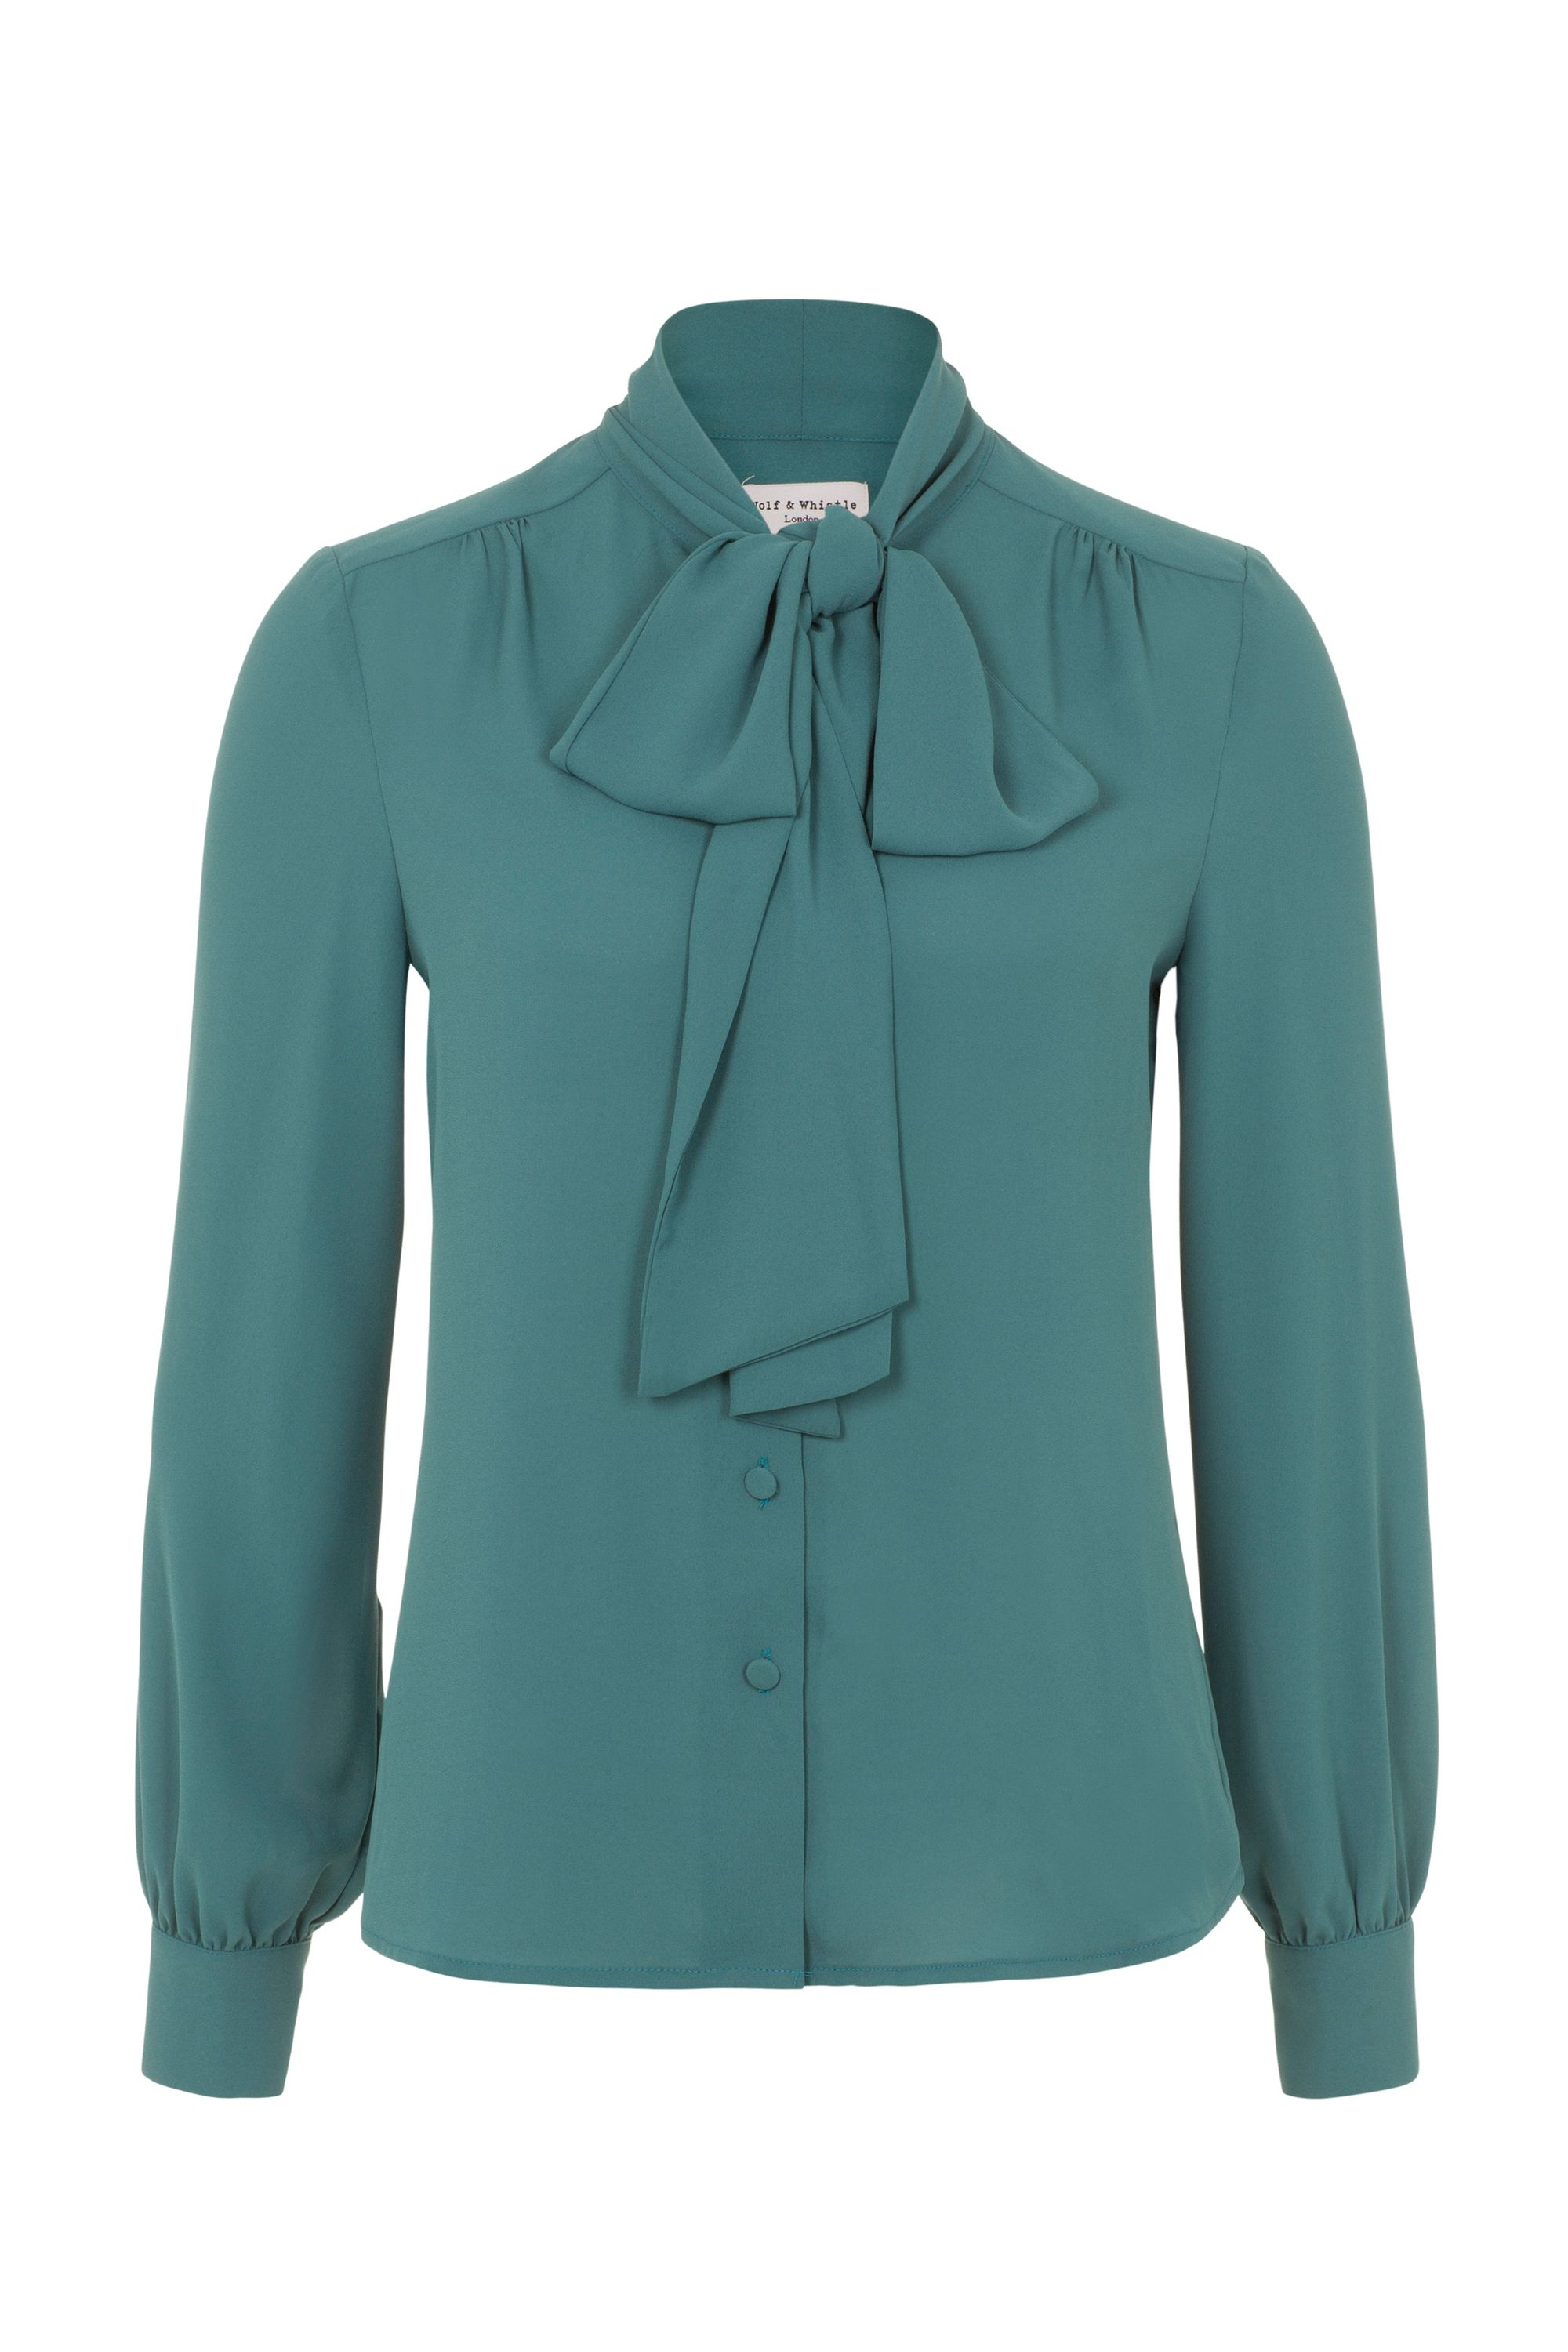 Wolf  Whistle Green Bow Front Blouse Green £33.75 AT vintagedancer.com